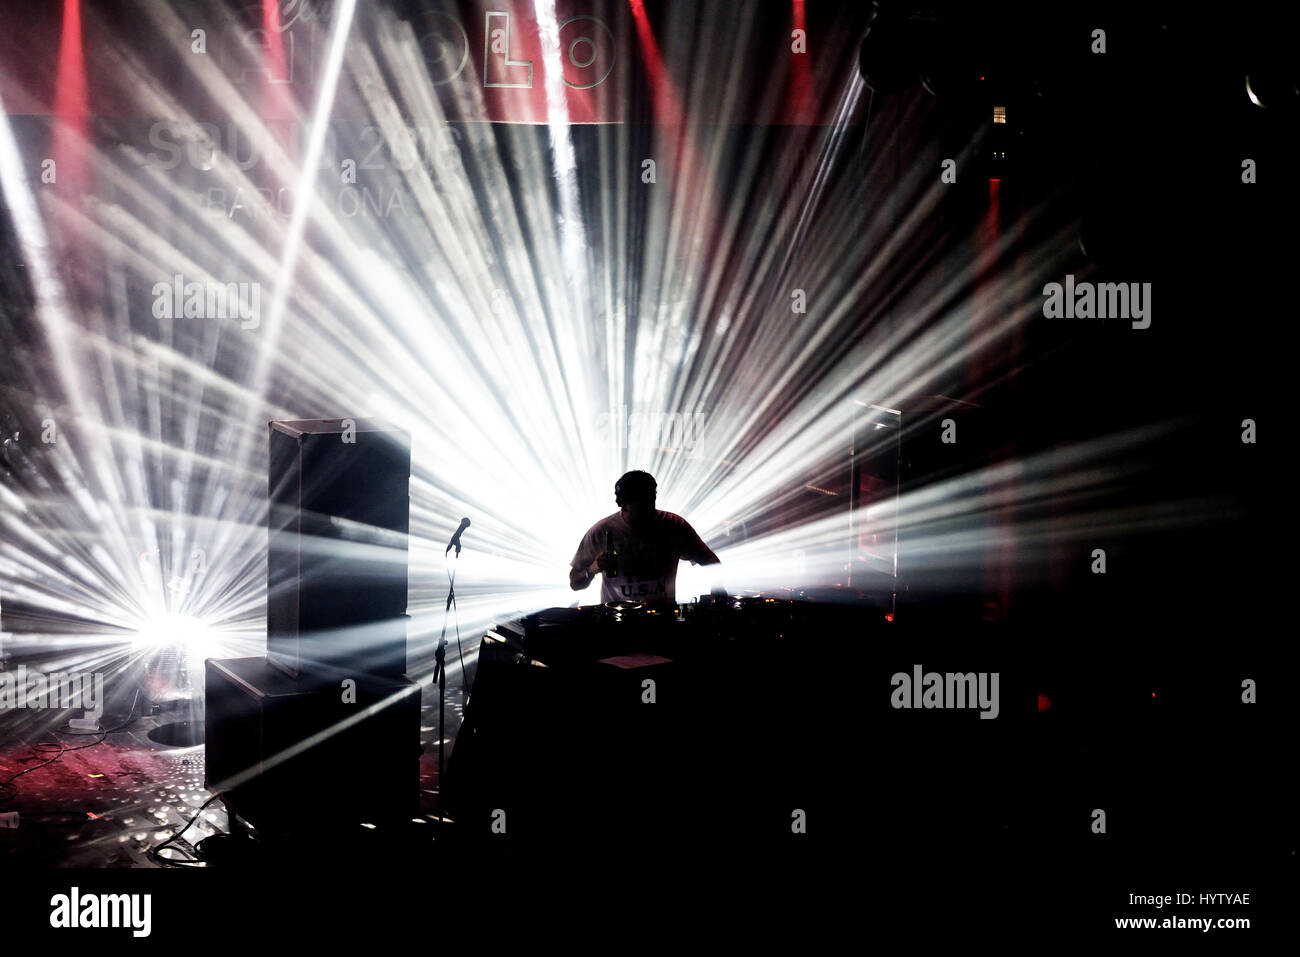 BARCELONA - JUN 5: The Avalanches (band) perform a DJ set concert at Primavera Sound 2016 Festival on June 5, 2016 - Stock Image